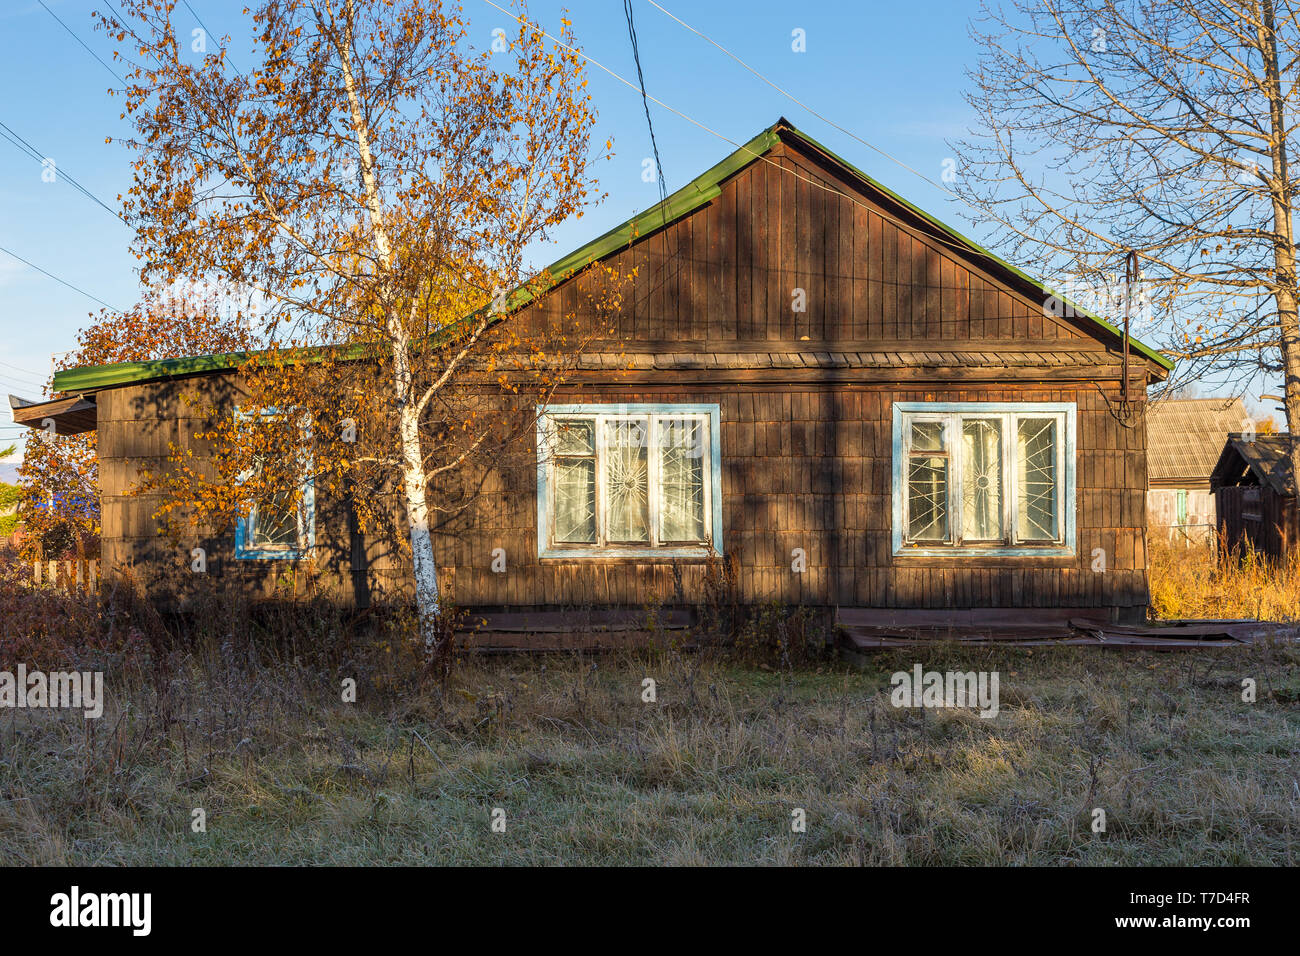 Wooden, rura house in Kozyriewsk on the Kamchatka Peninsula. Tree in the front. Russia. - Stock Image